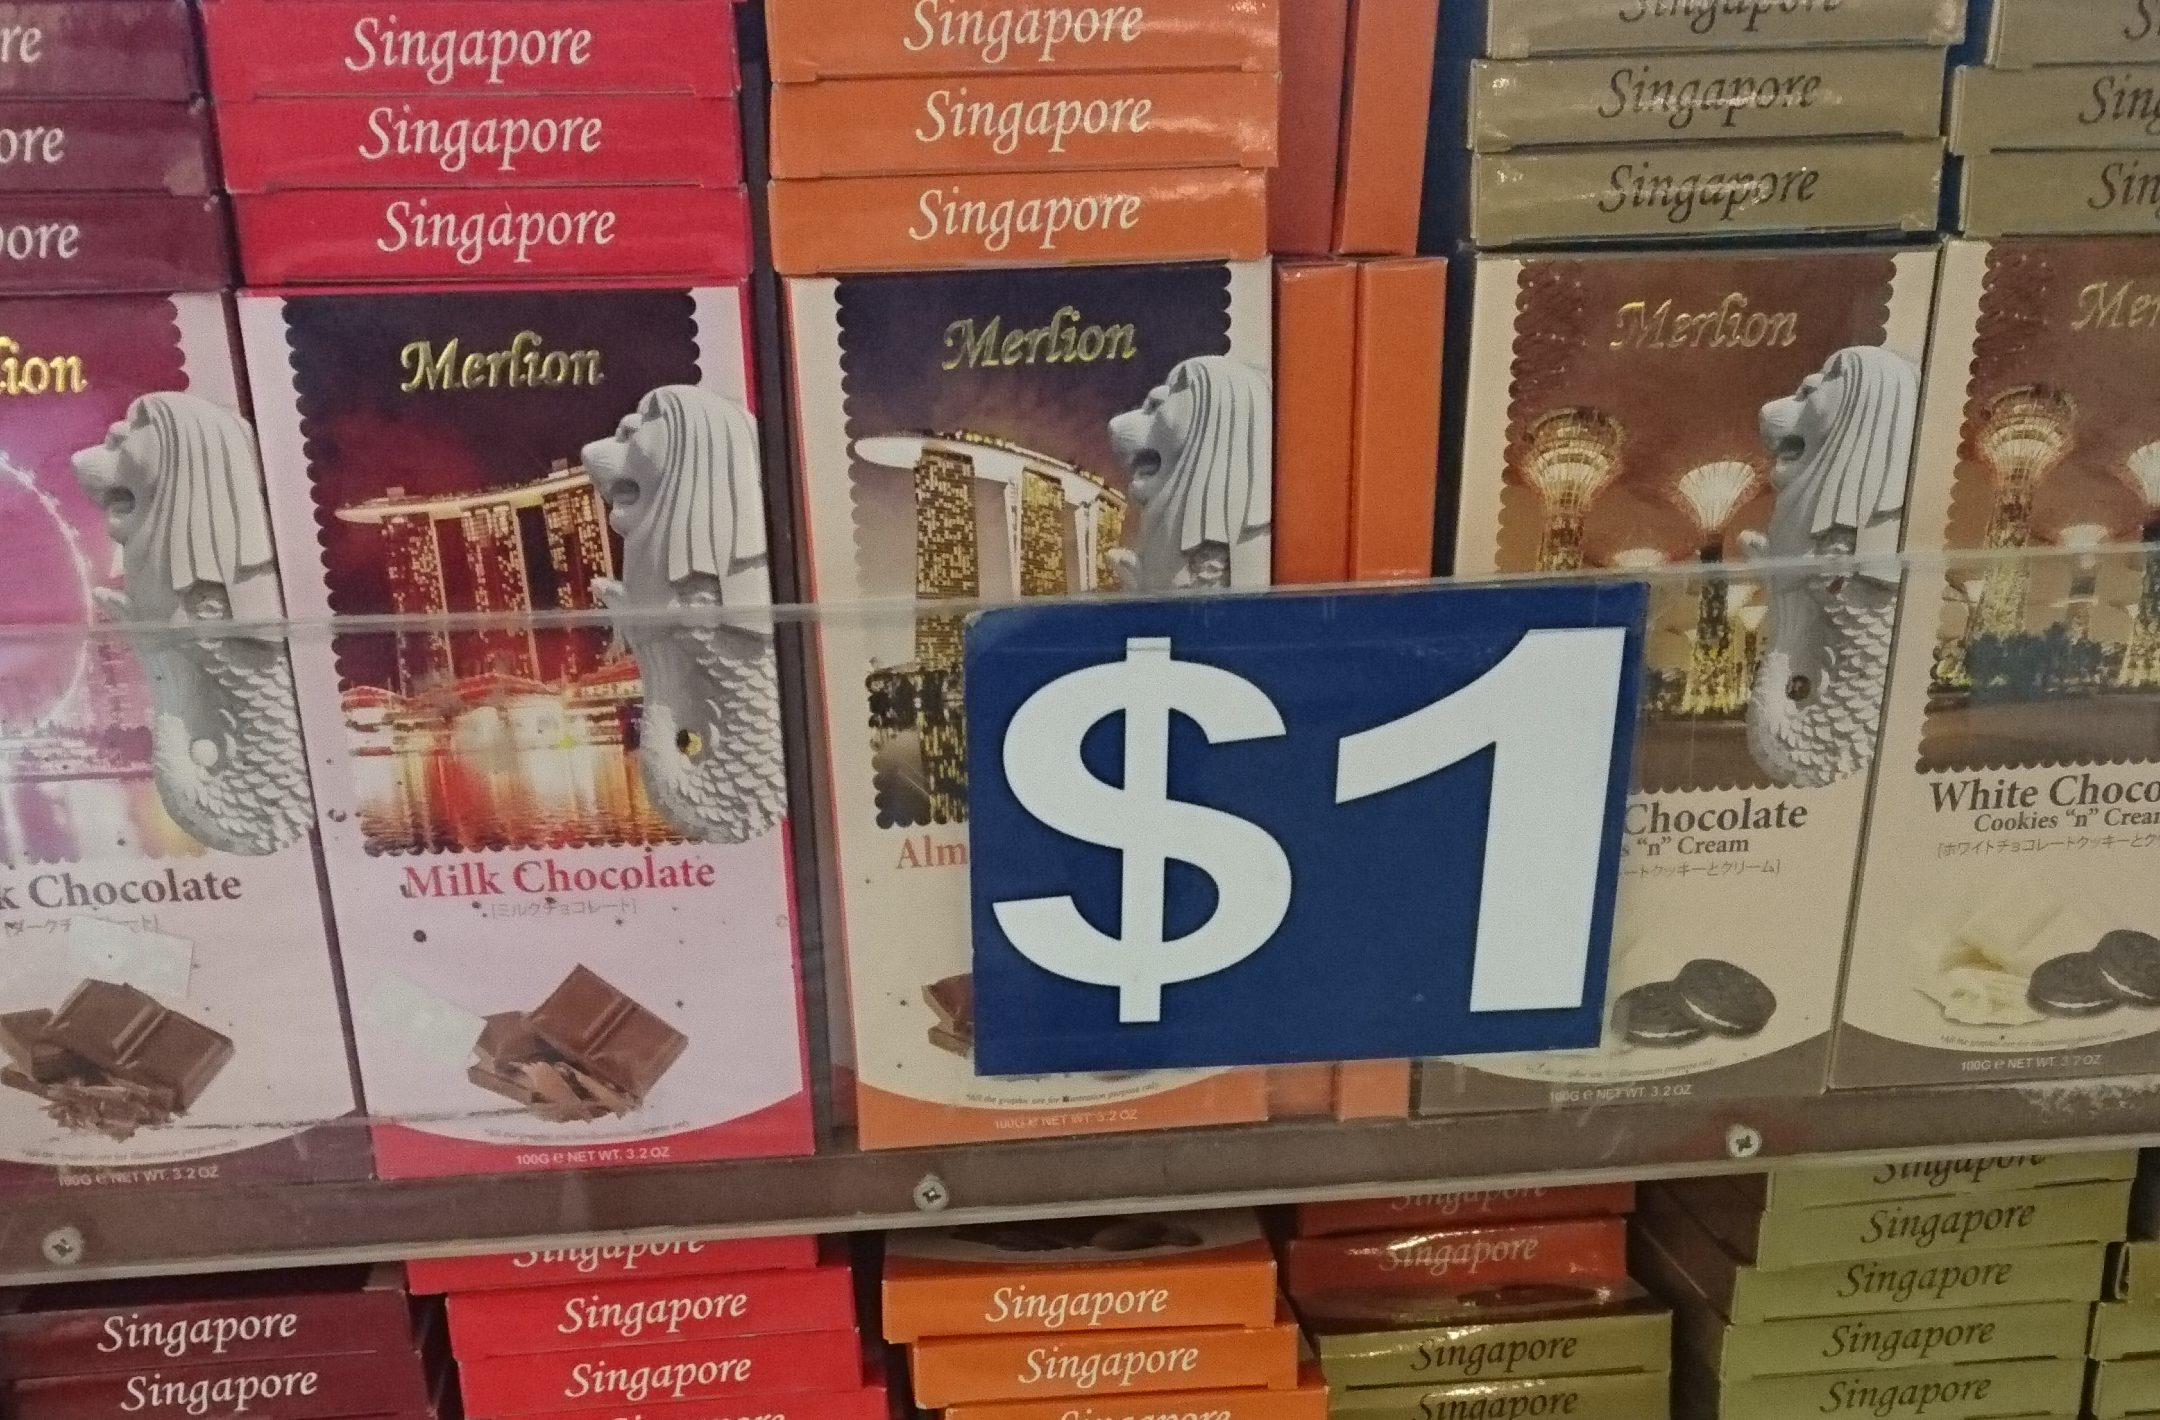 Merlion Chocolates found in Chinatown